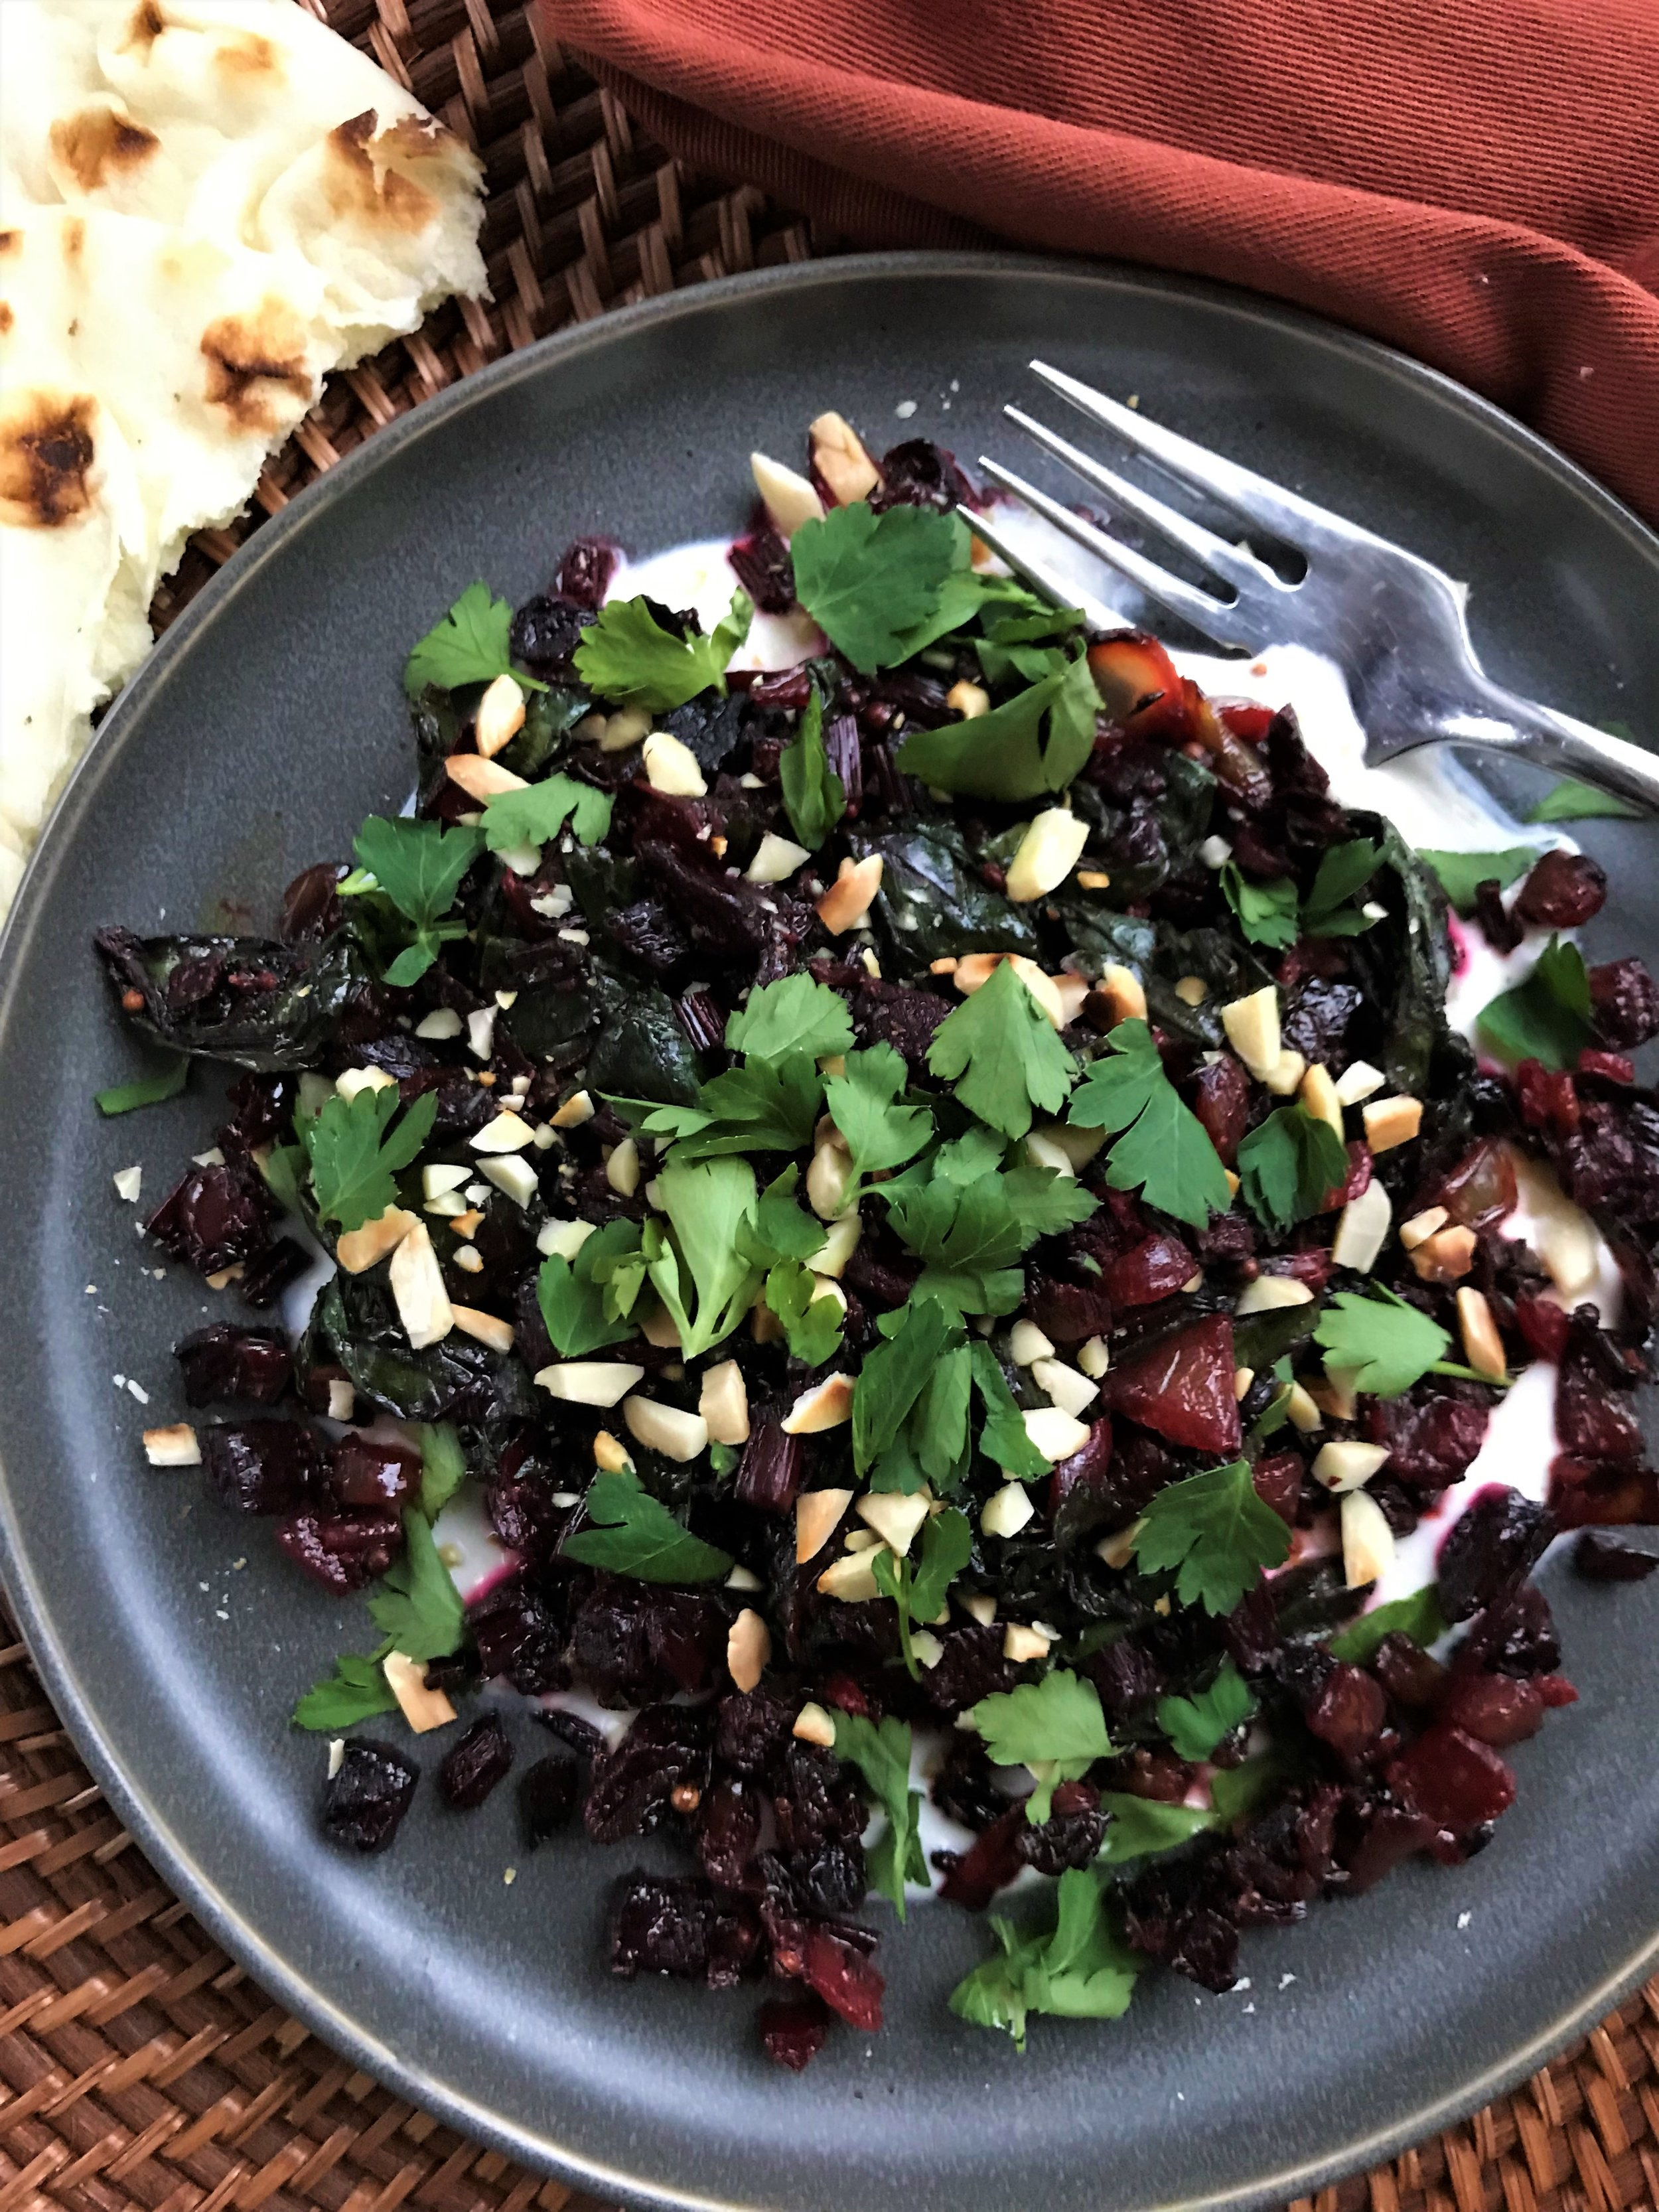 Here's Spicy Beet Curry with Beet Greens and Spiced Yogurt in the Adventure Kitchen. You can scoop it into warm naan bread for a vegetarian main, or serve it as a side with chicken, steak, pork or just about anything.